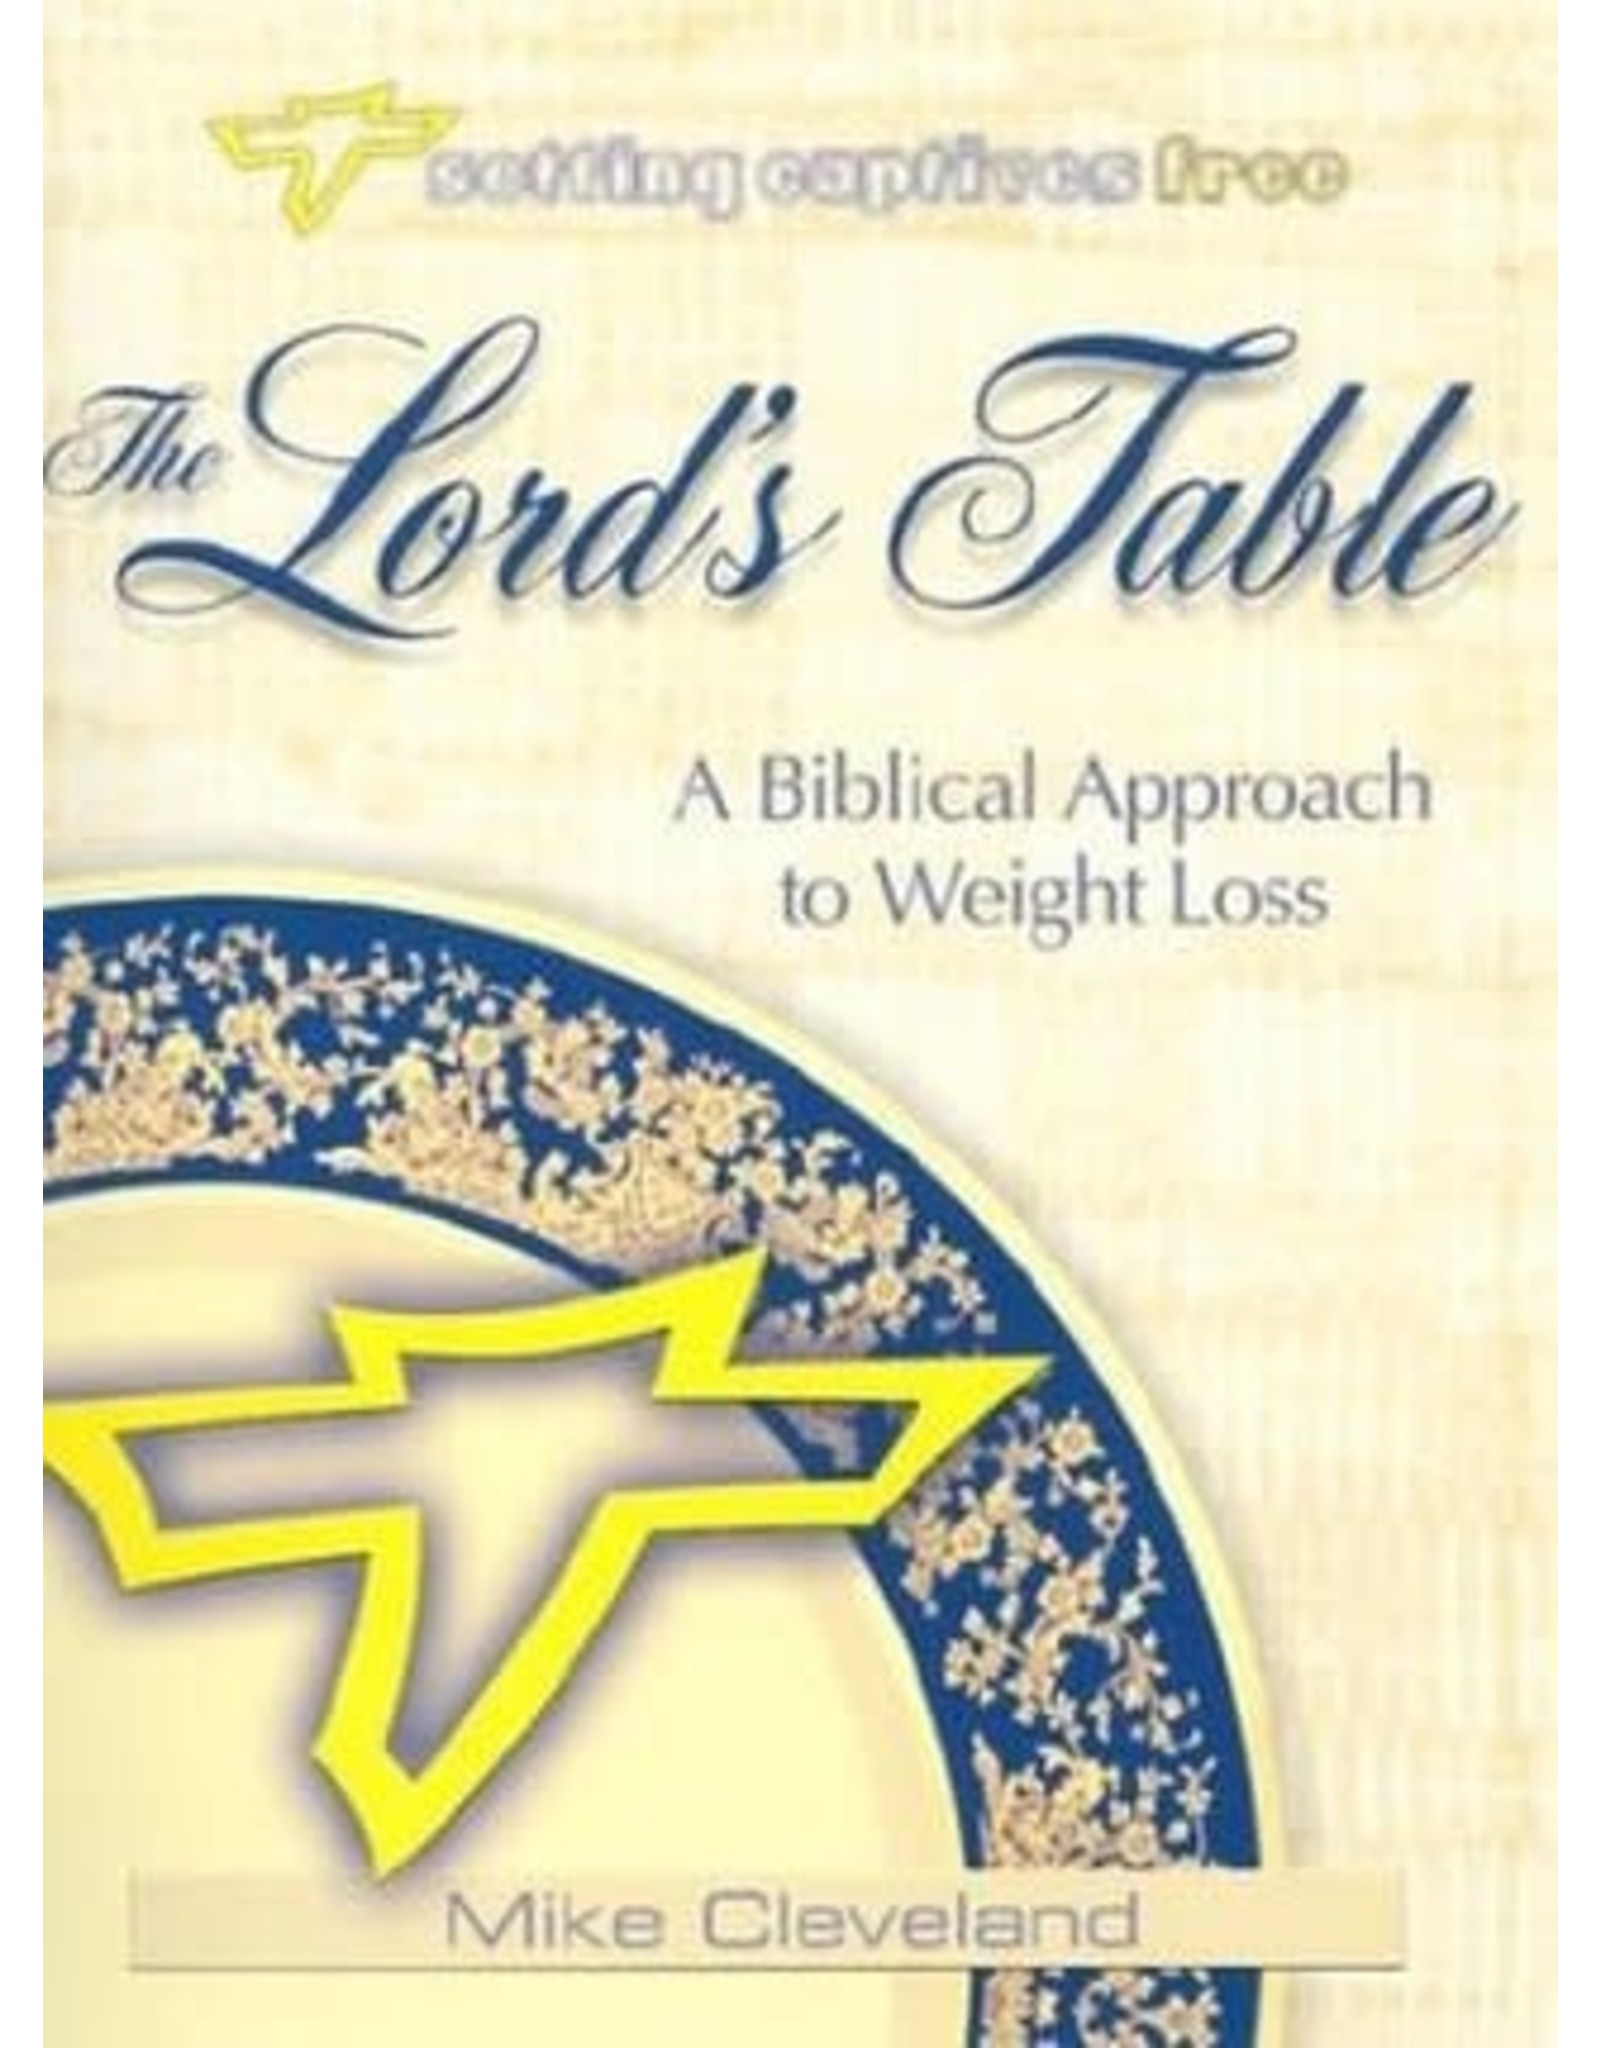 Cleveland The Lord's Table